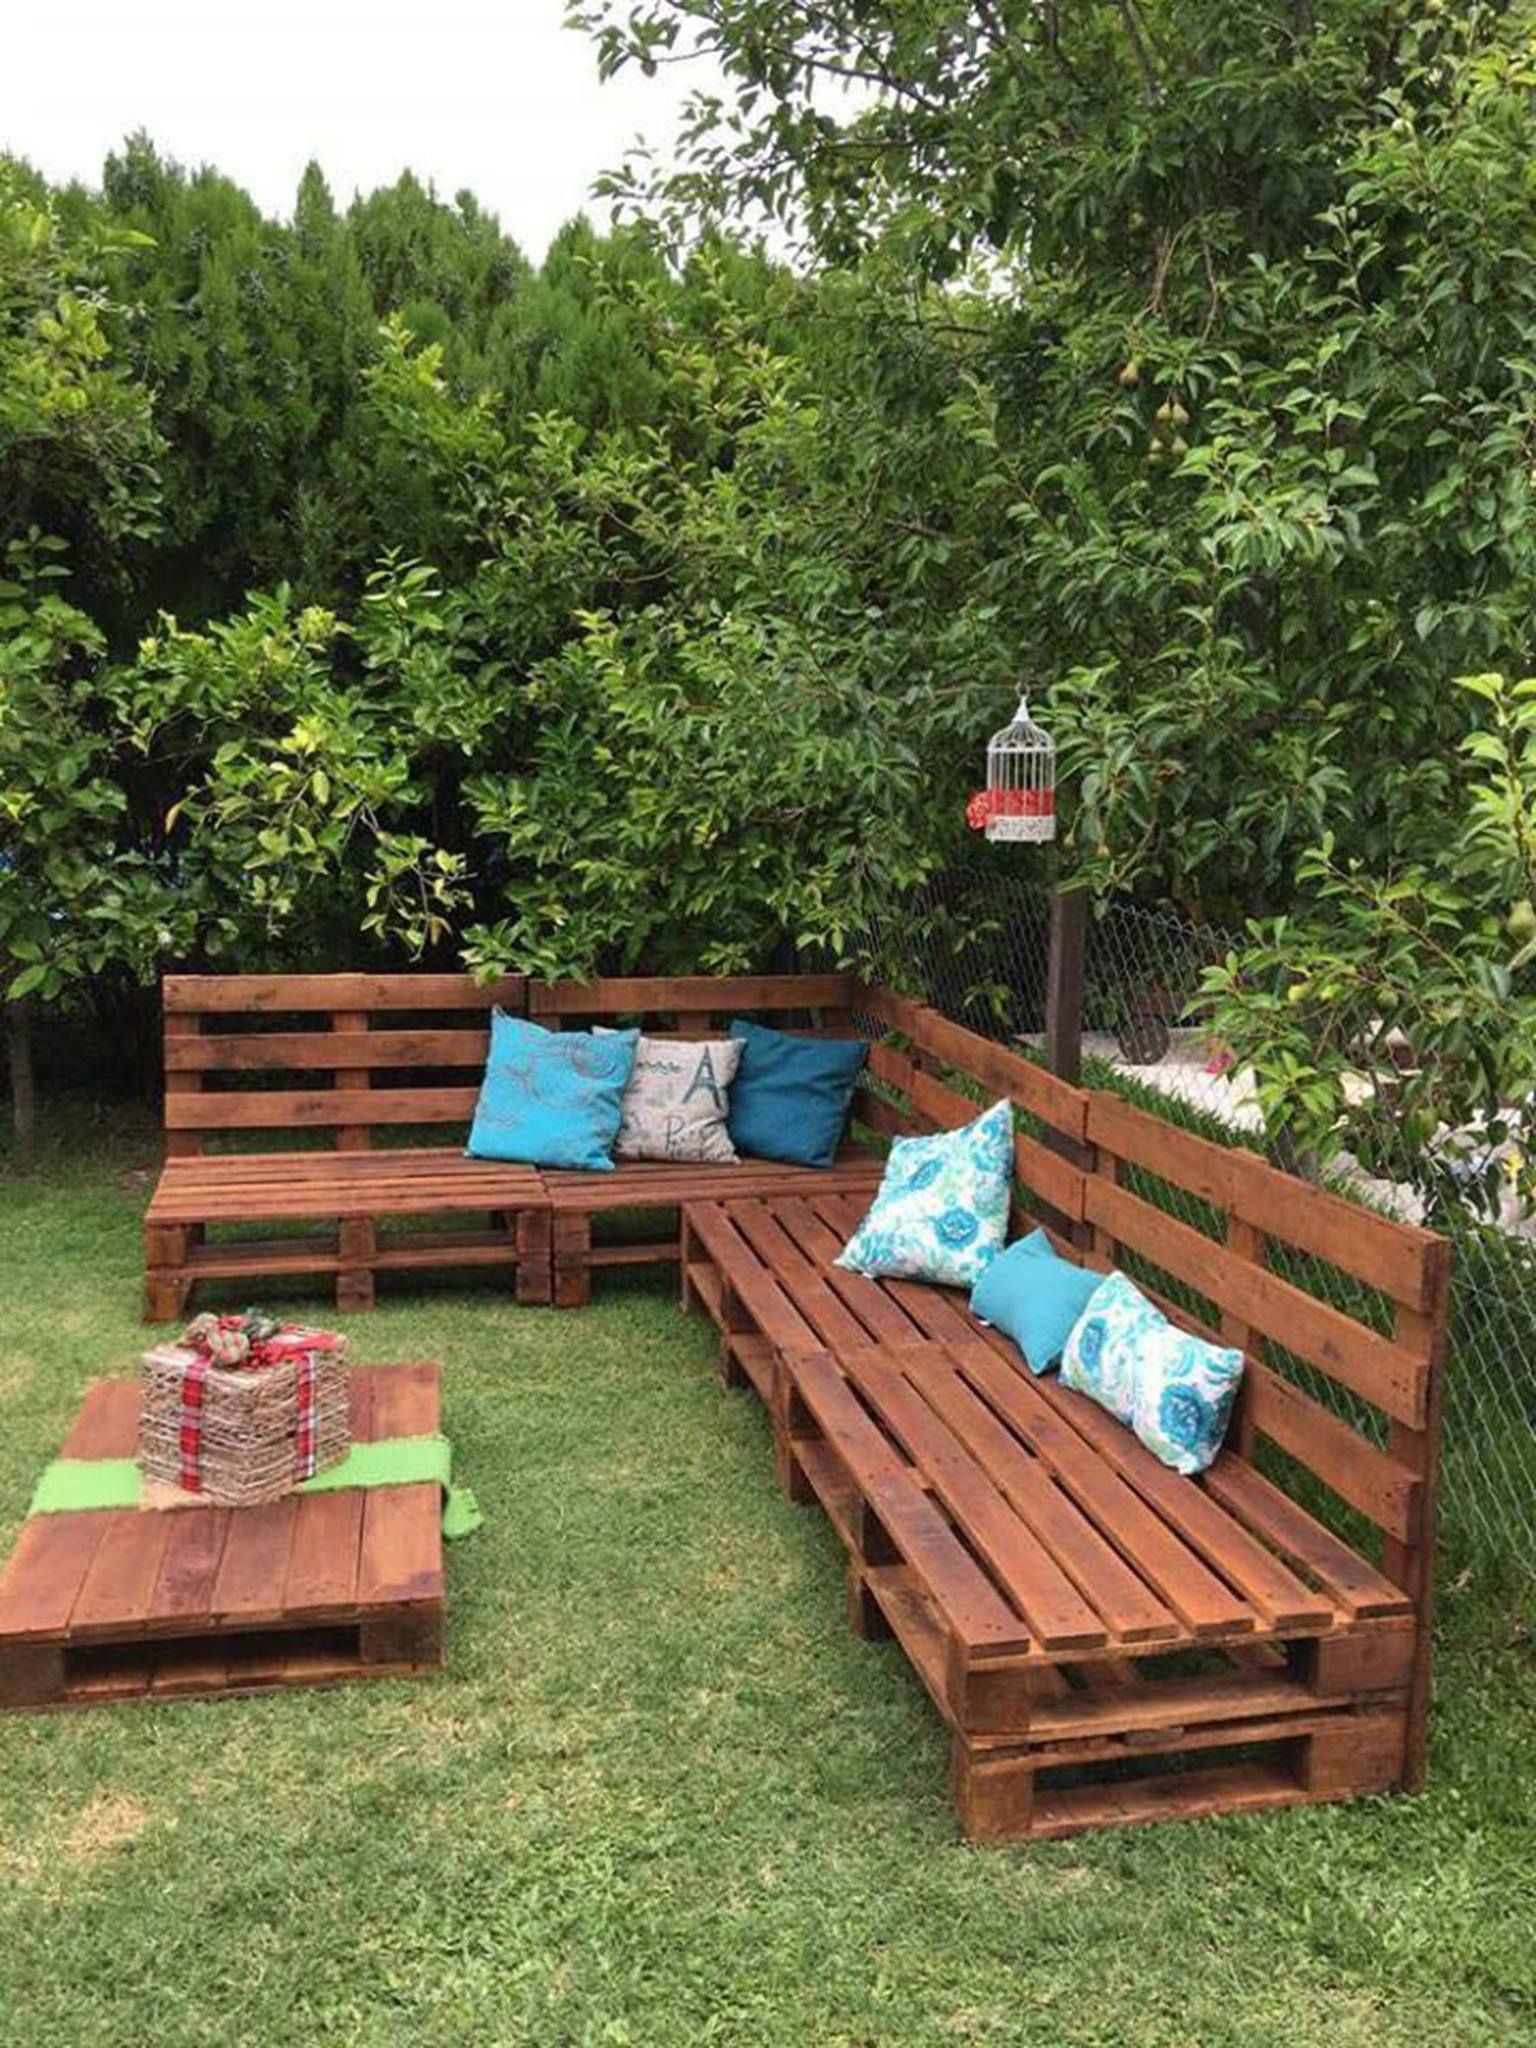 10 Garden Ideas With Pallets Most Brilliant As Well As Stunning Backyard Seating Area Backyard Seating Pallet Outdoor Backyard garden ideas with pallets